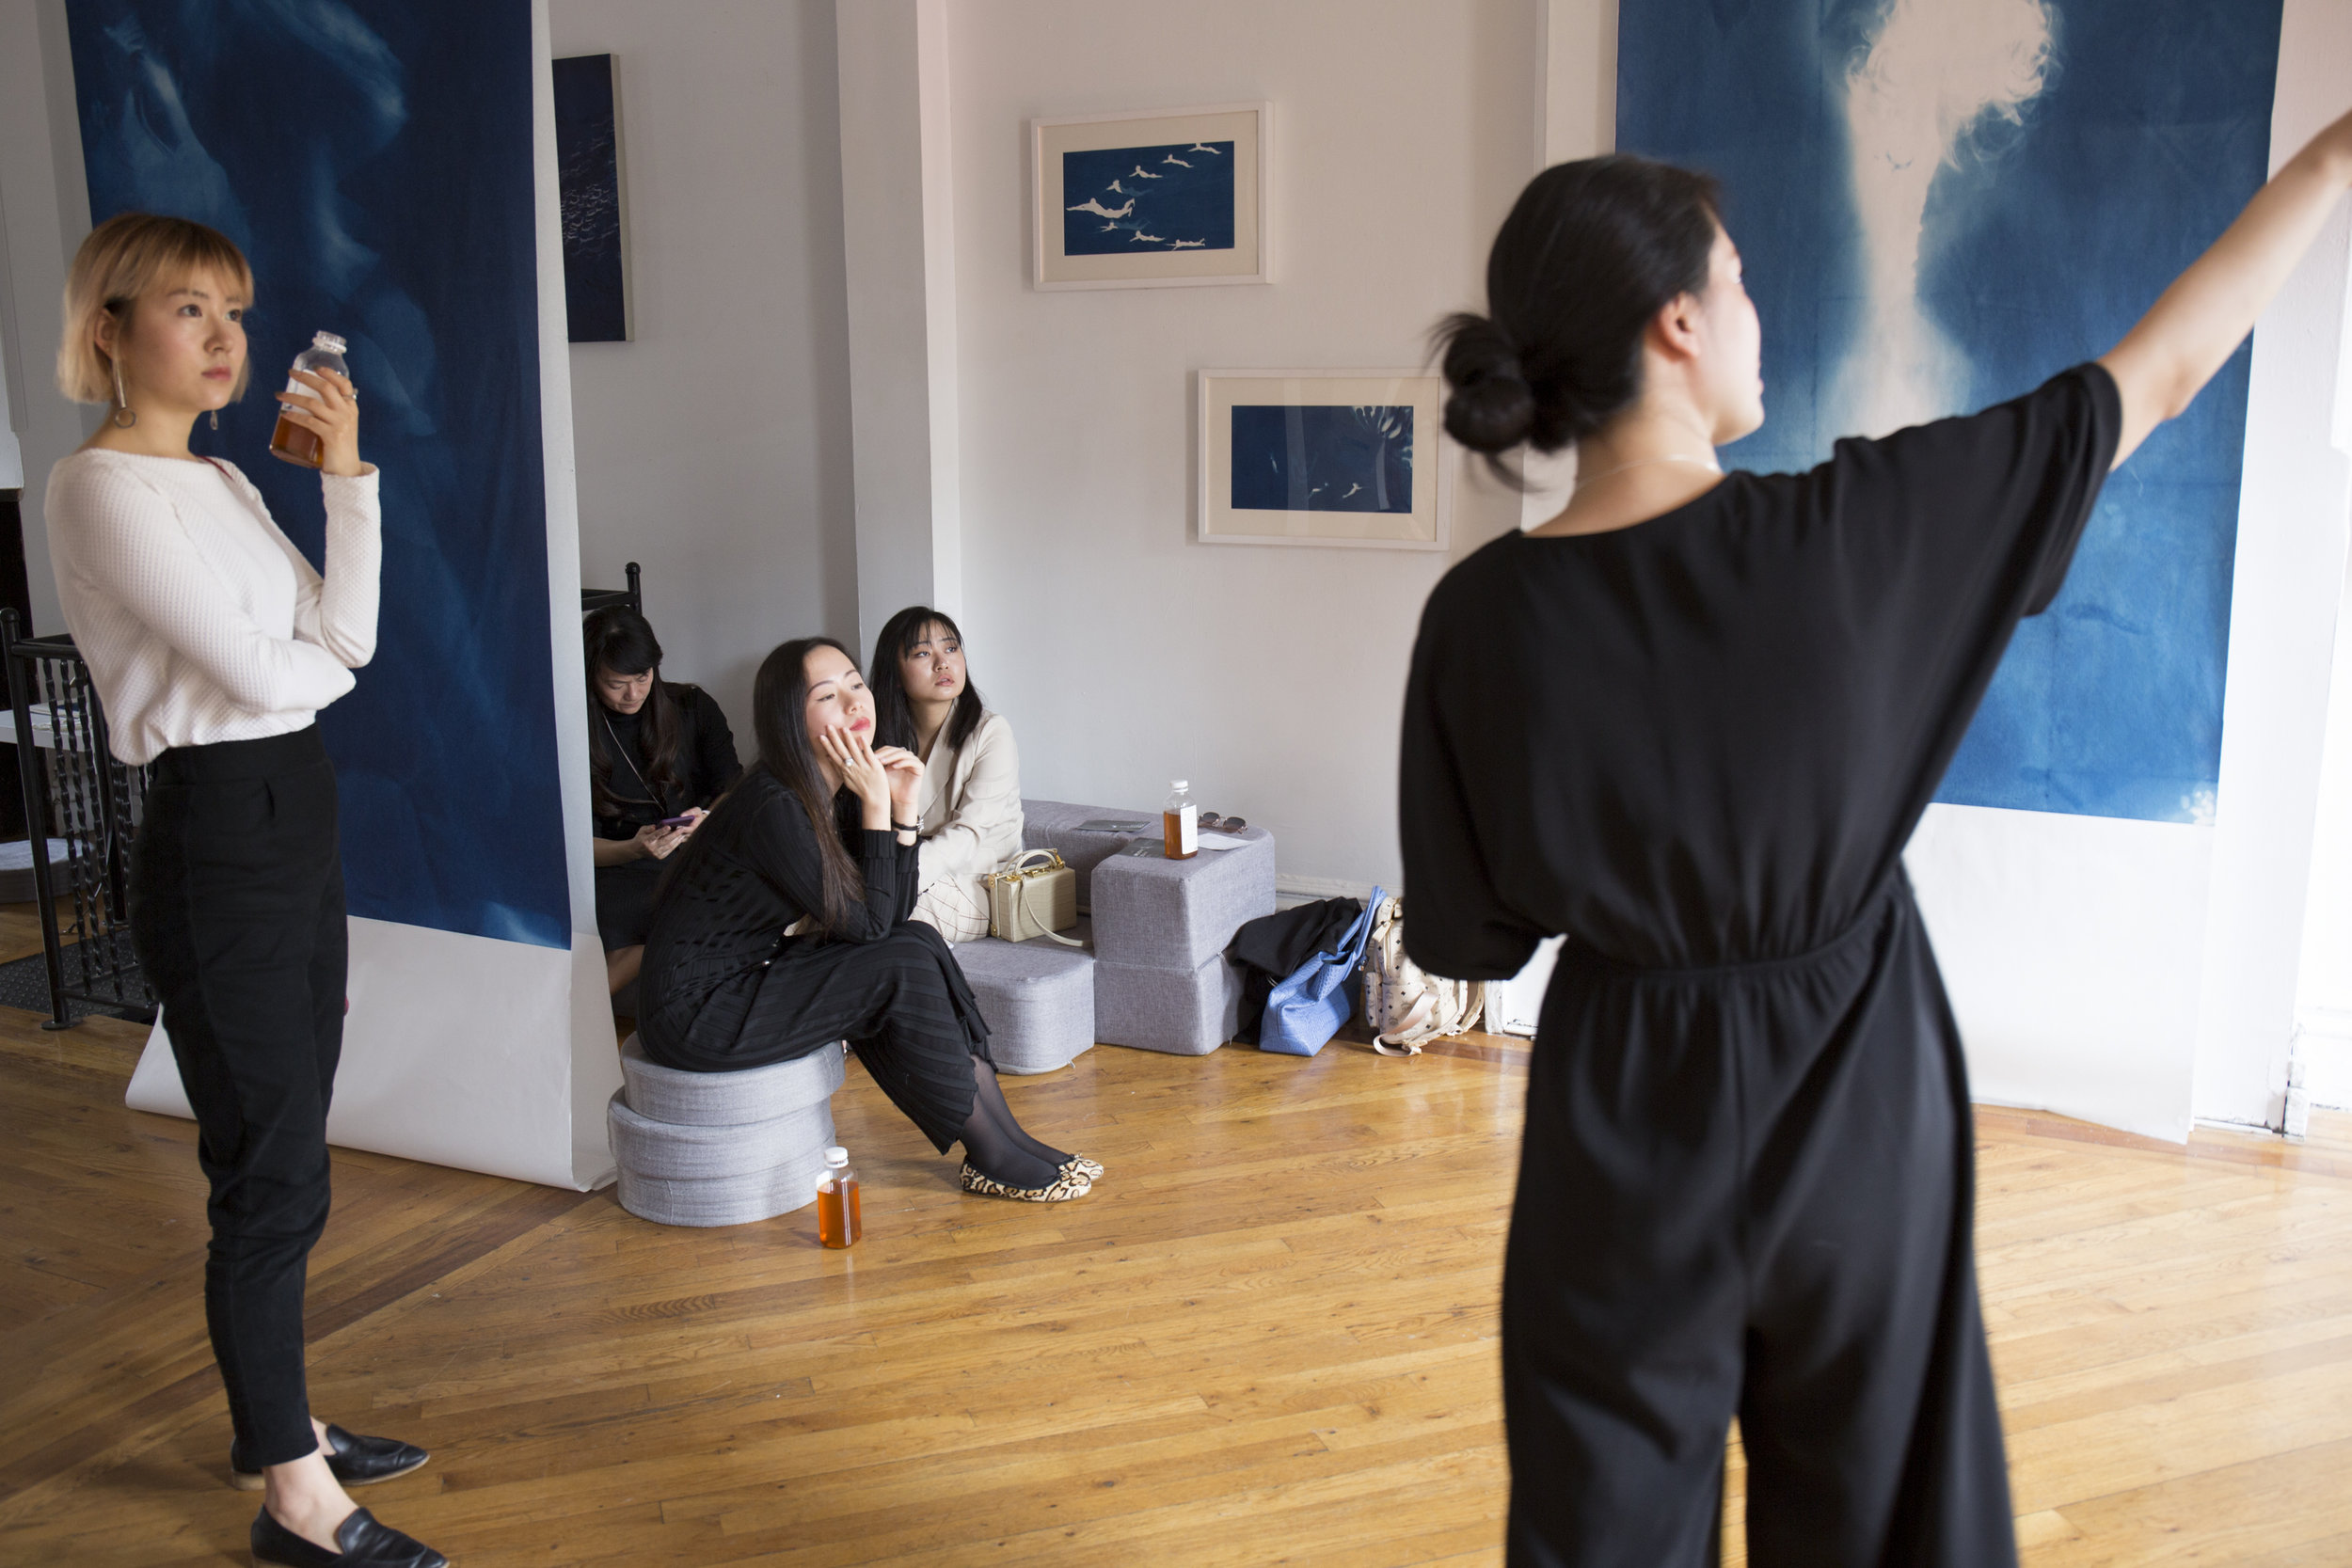 Tracking the White Shadow Performance, photographed by Alice Luo, courtesy Fou Gallery.